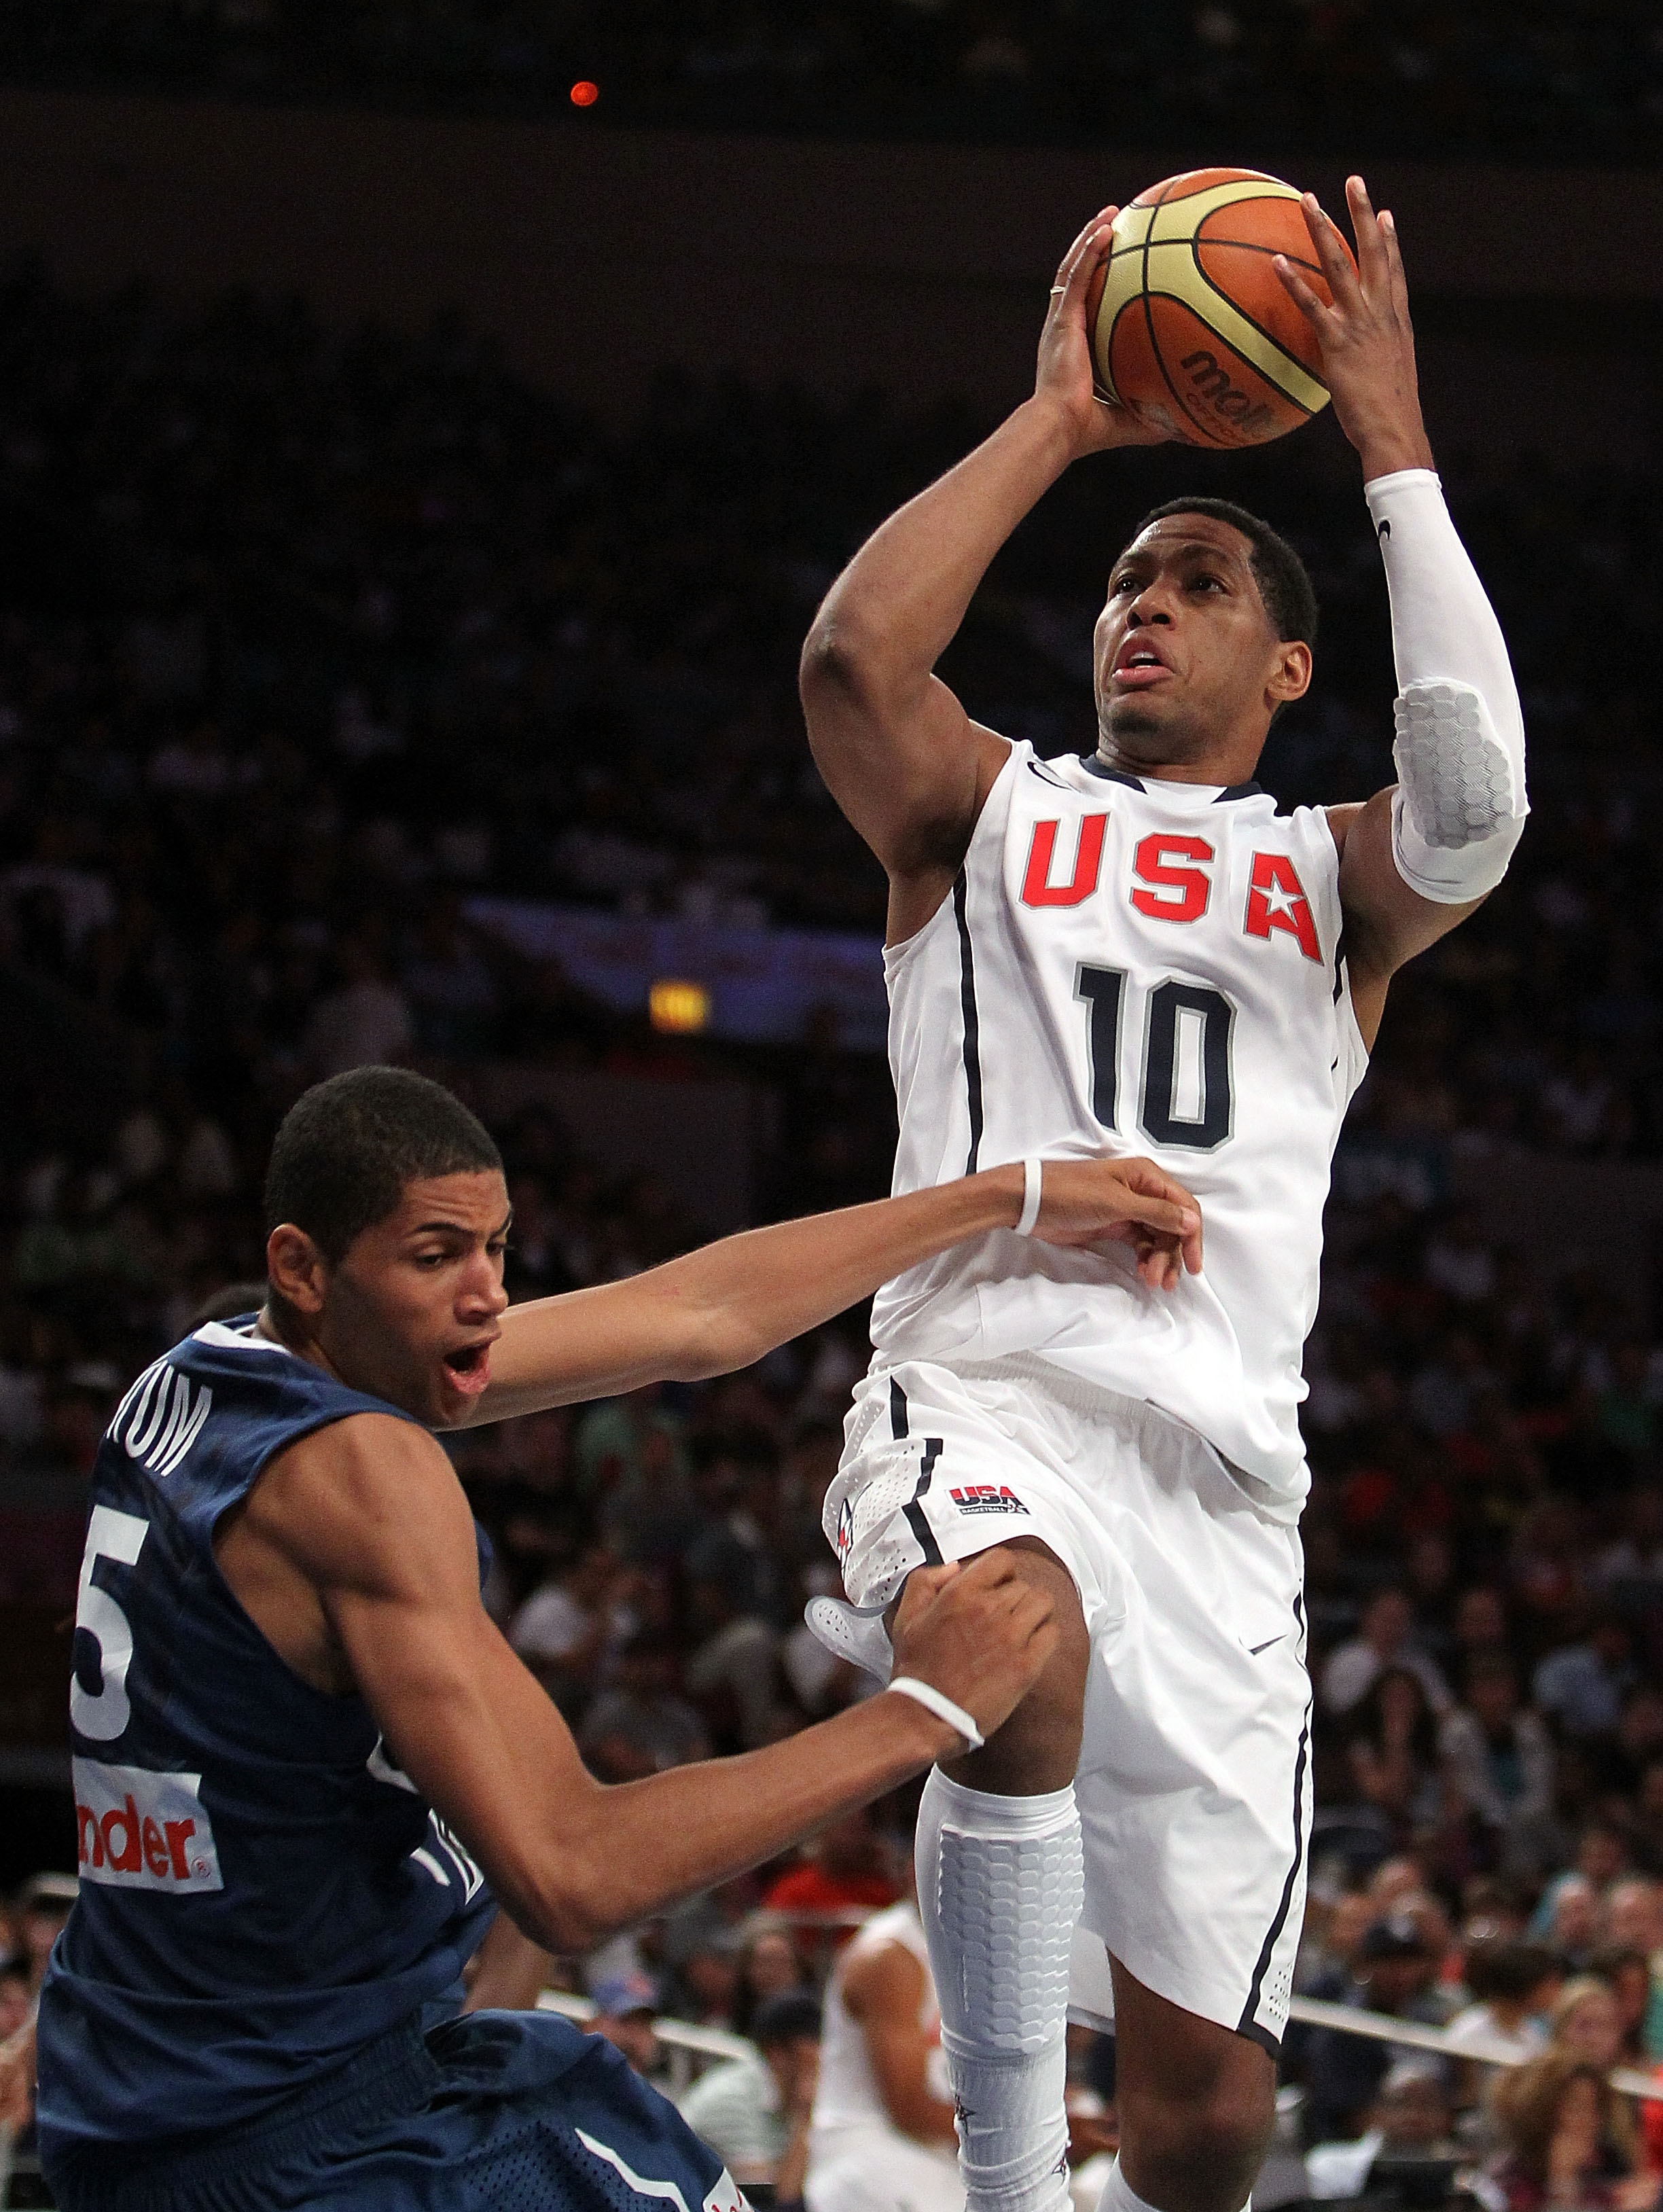 NEW YORK - AUGUST 15: Danny Granger #10 of the United States shoots over Nicholas Batum #5 of France during their exhibition game as part of the World Basketball Festival at Madison Square Garden on August 15, 2010 in New York City.  (Photo by Nick Laham/